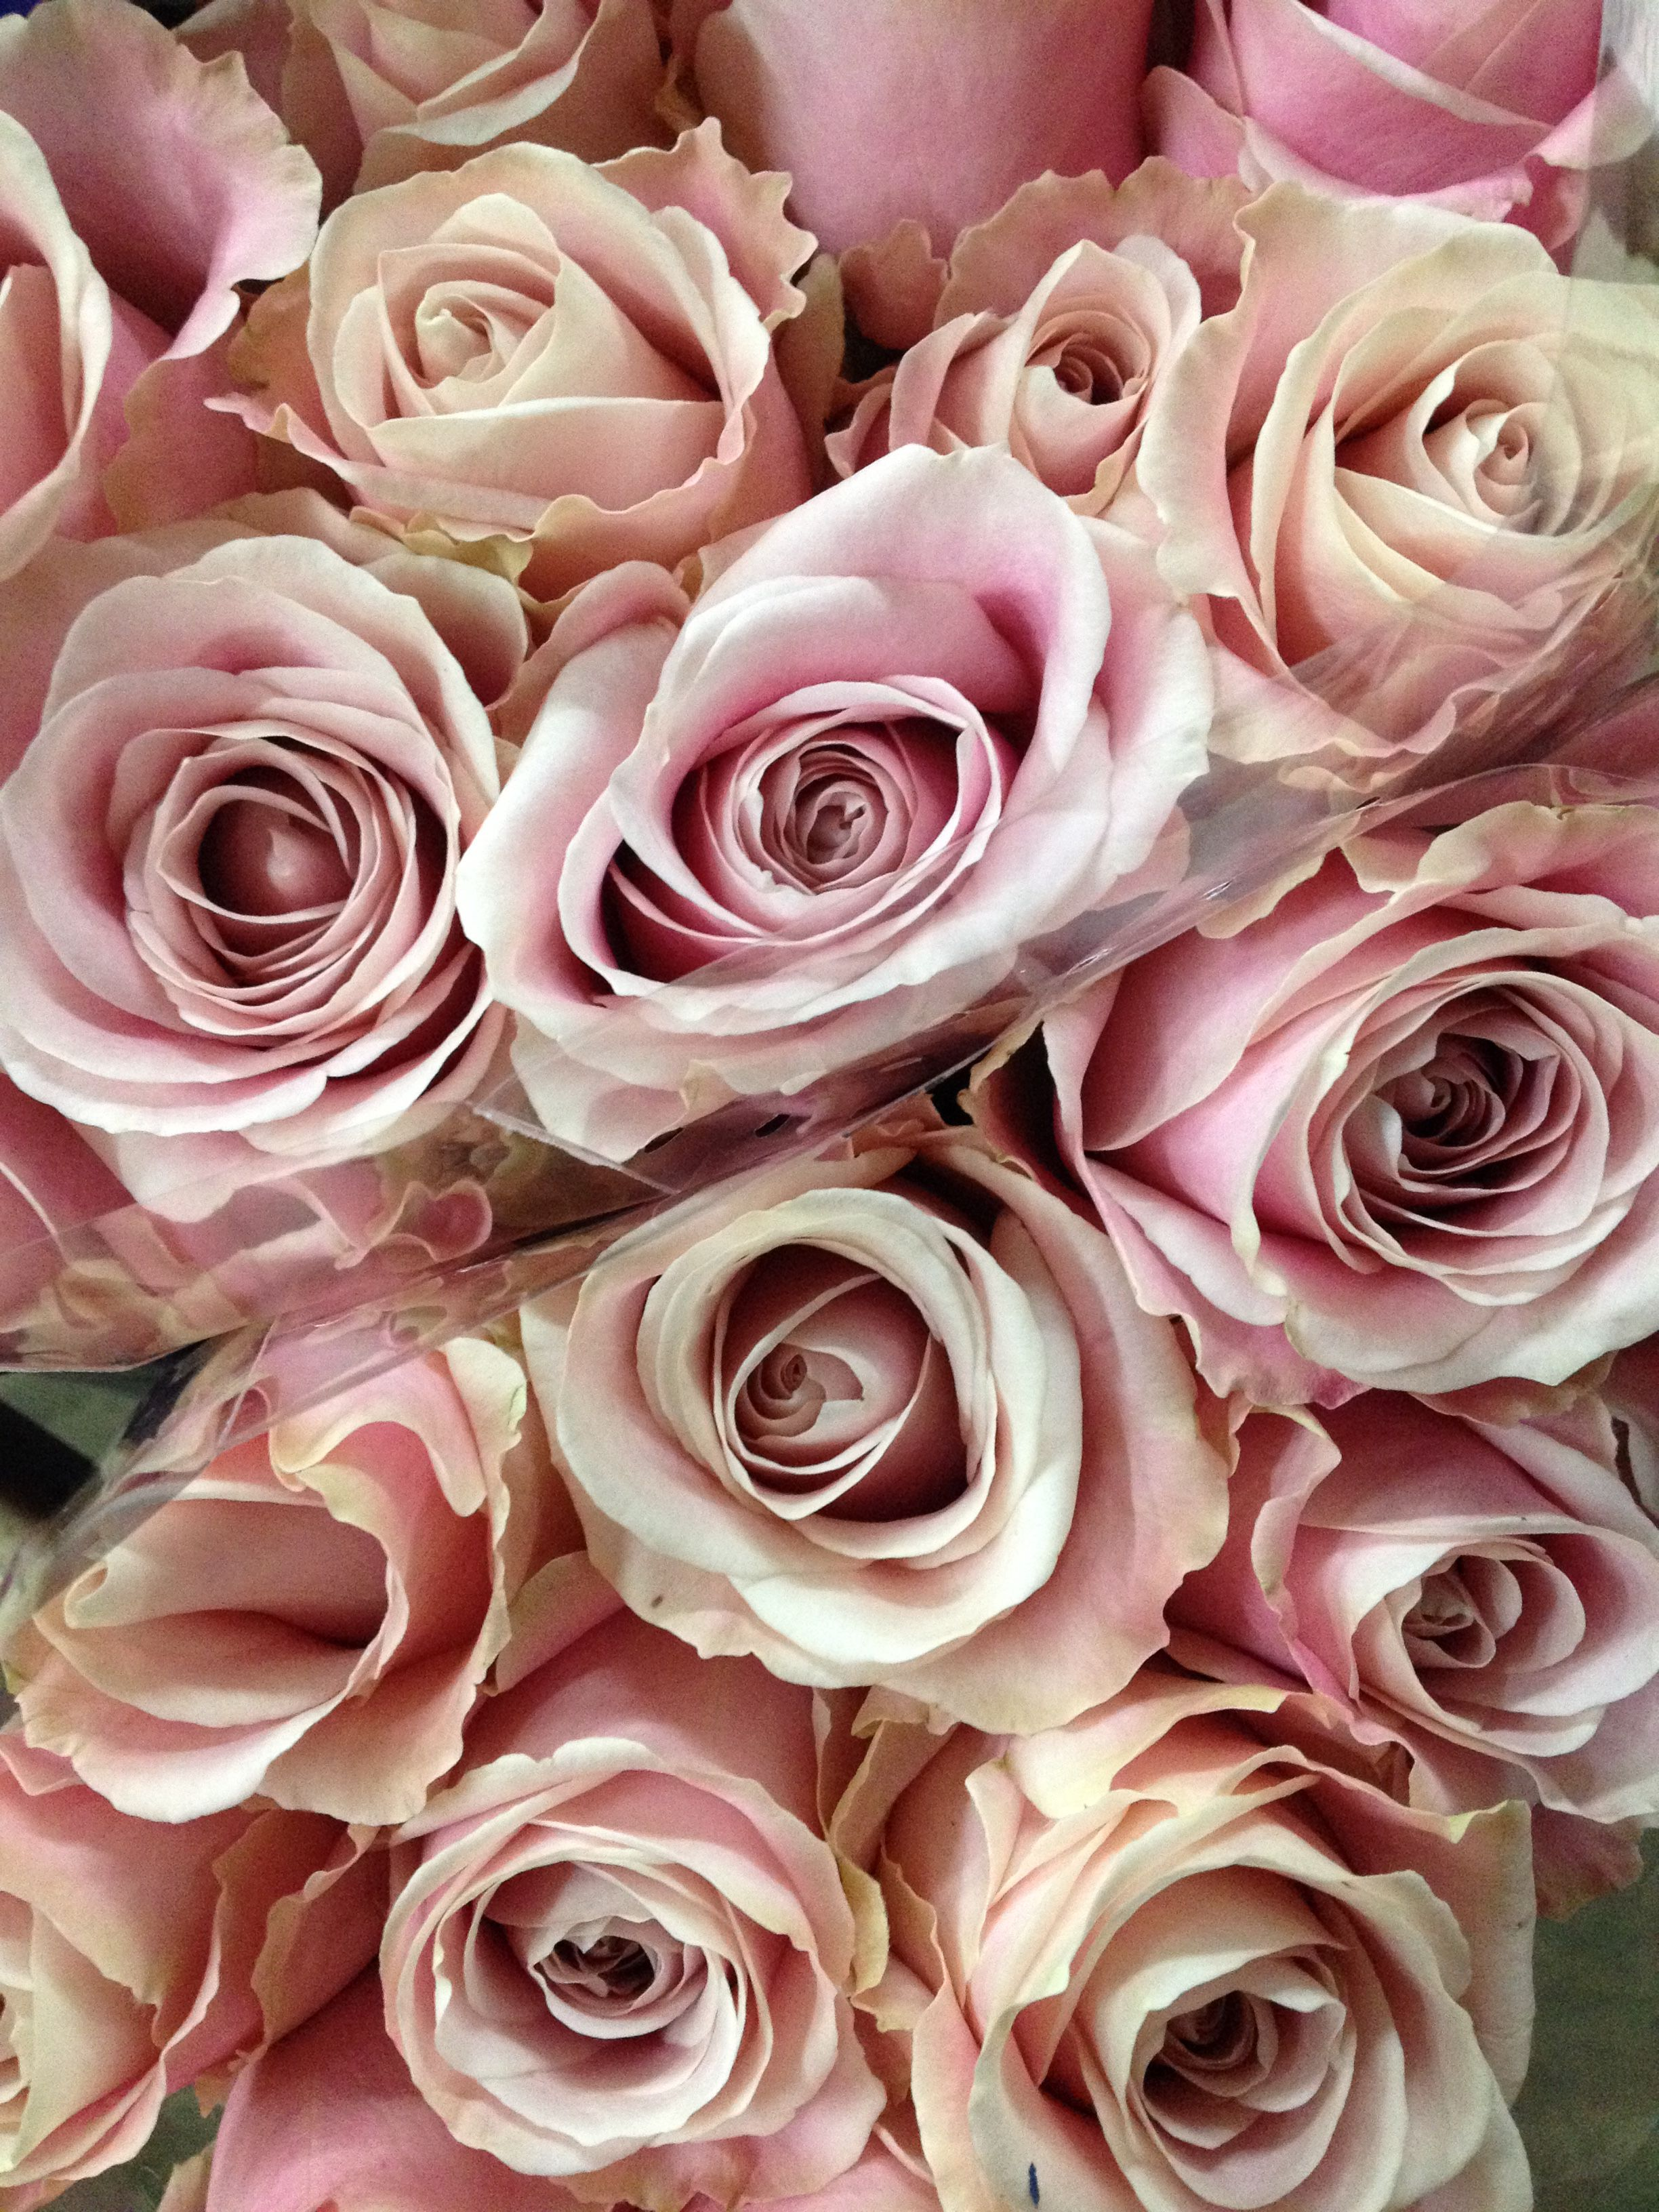 'Pink' Avalanche Rose...Sold in bunches of 20 stems from